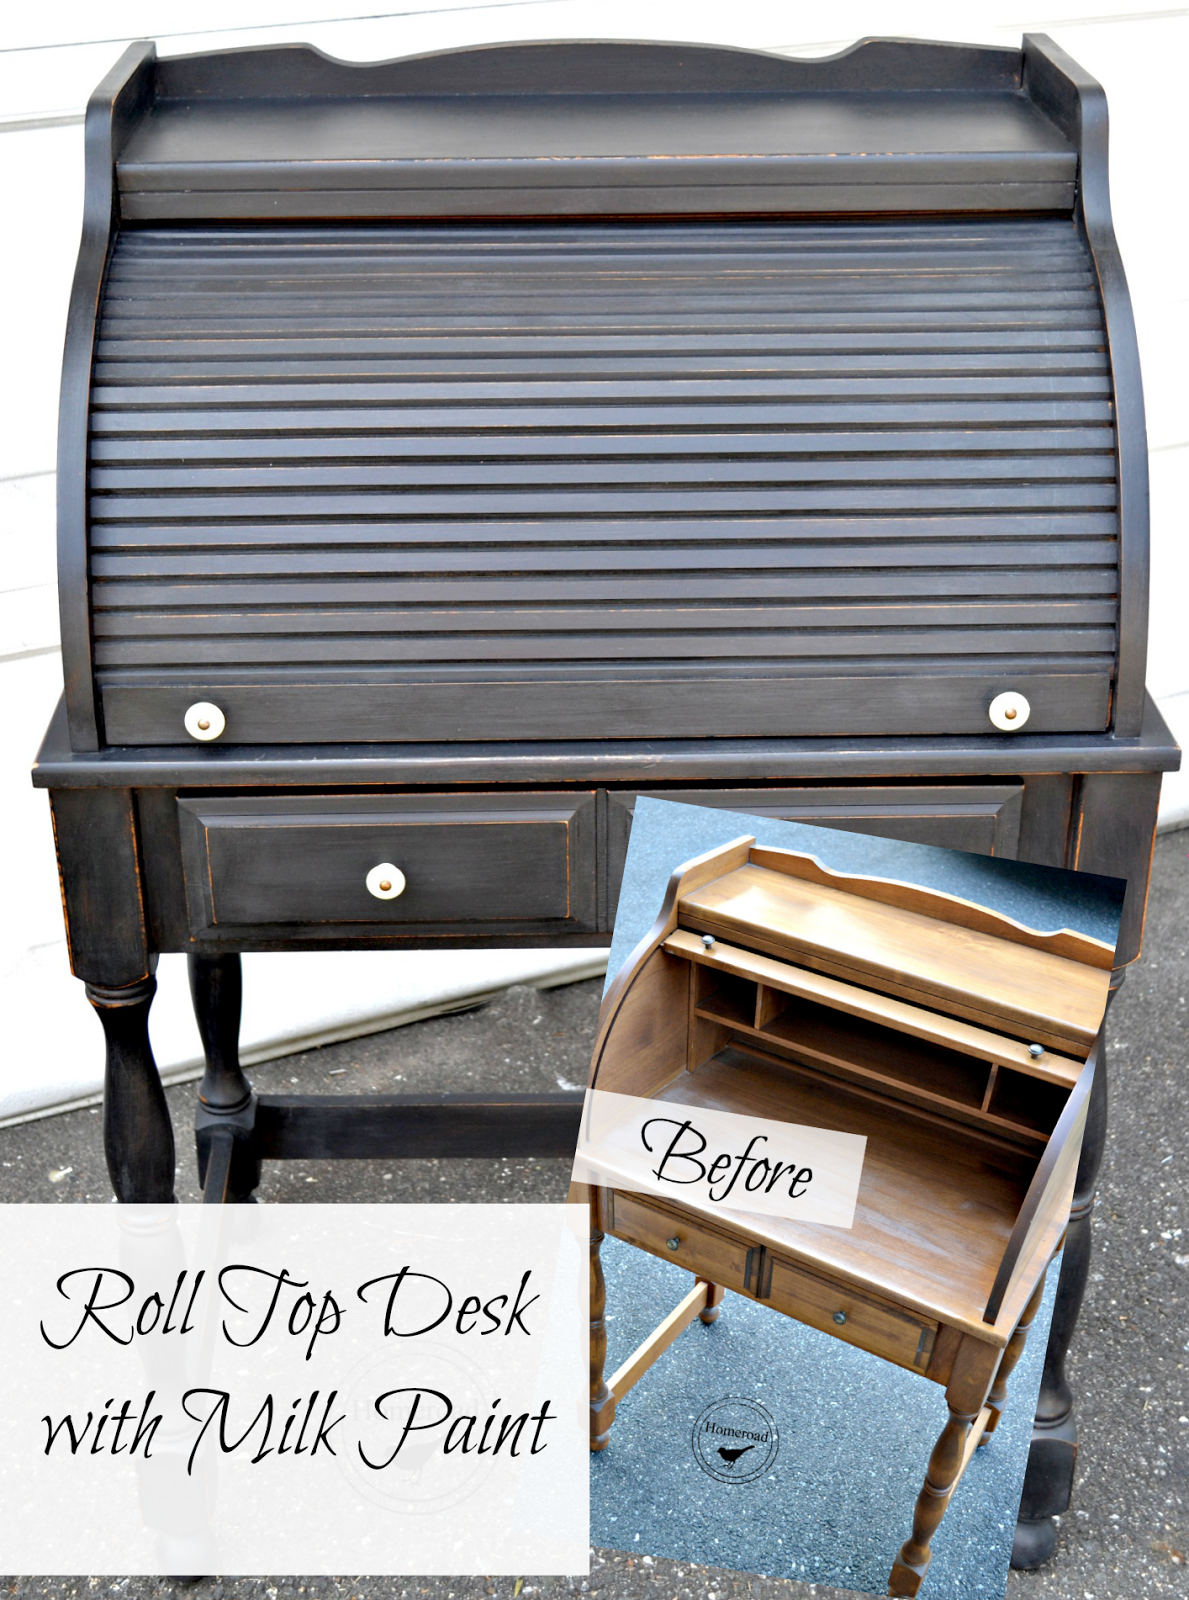 Roll Top Desk with Typewriter